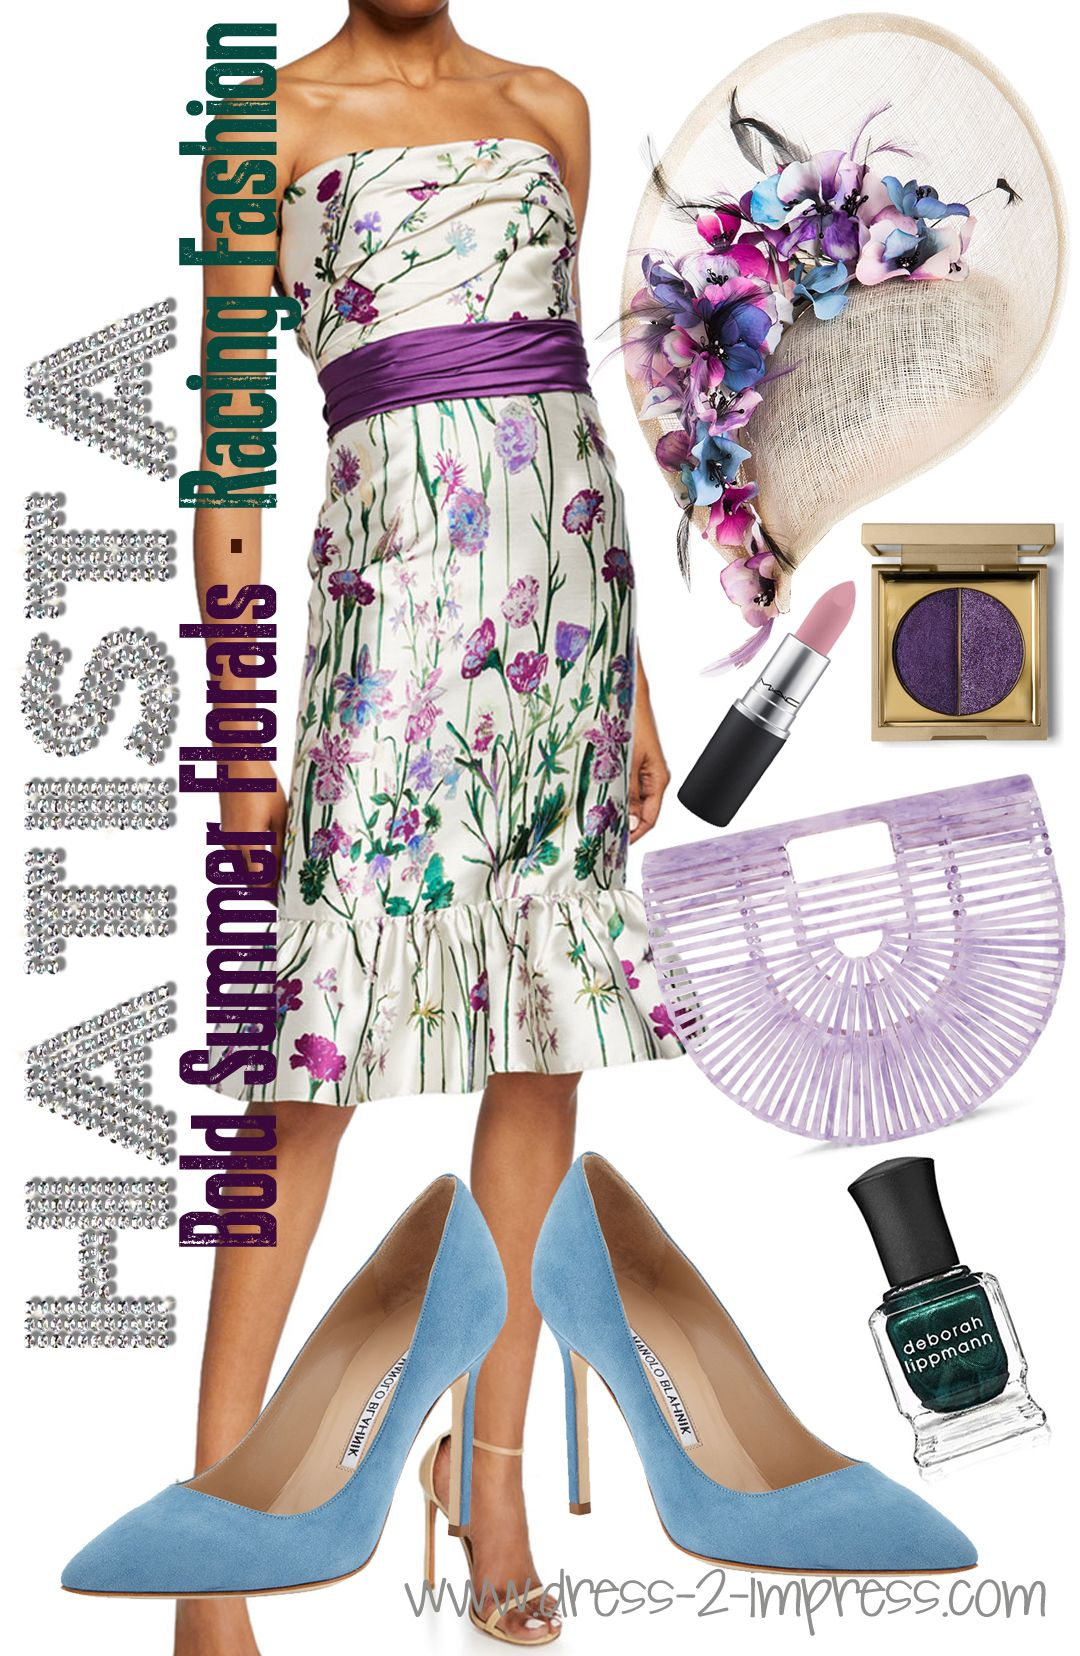 Kentucky Derby 2020 Fashion.Graphic Floral Print Dresses Are Always On Trend For The